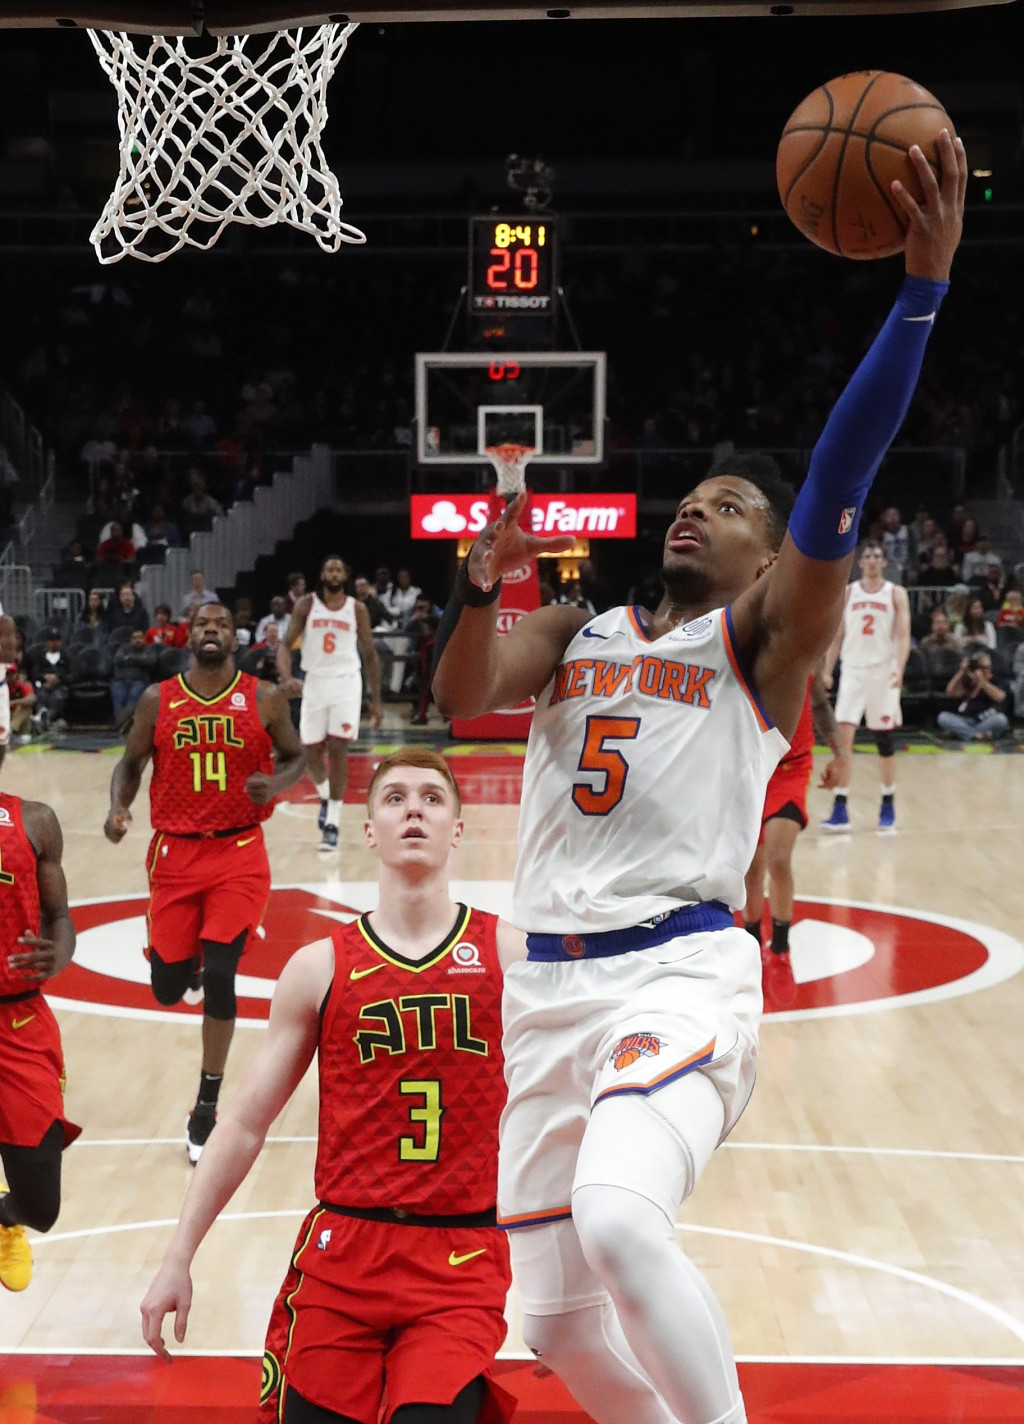 New York Knicks guard Dennis Smith Jr. (5) goes in for a basket asA tlanta Hawks guard Kevin Huerter (3) watches during the first half of an NBA baske...